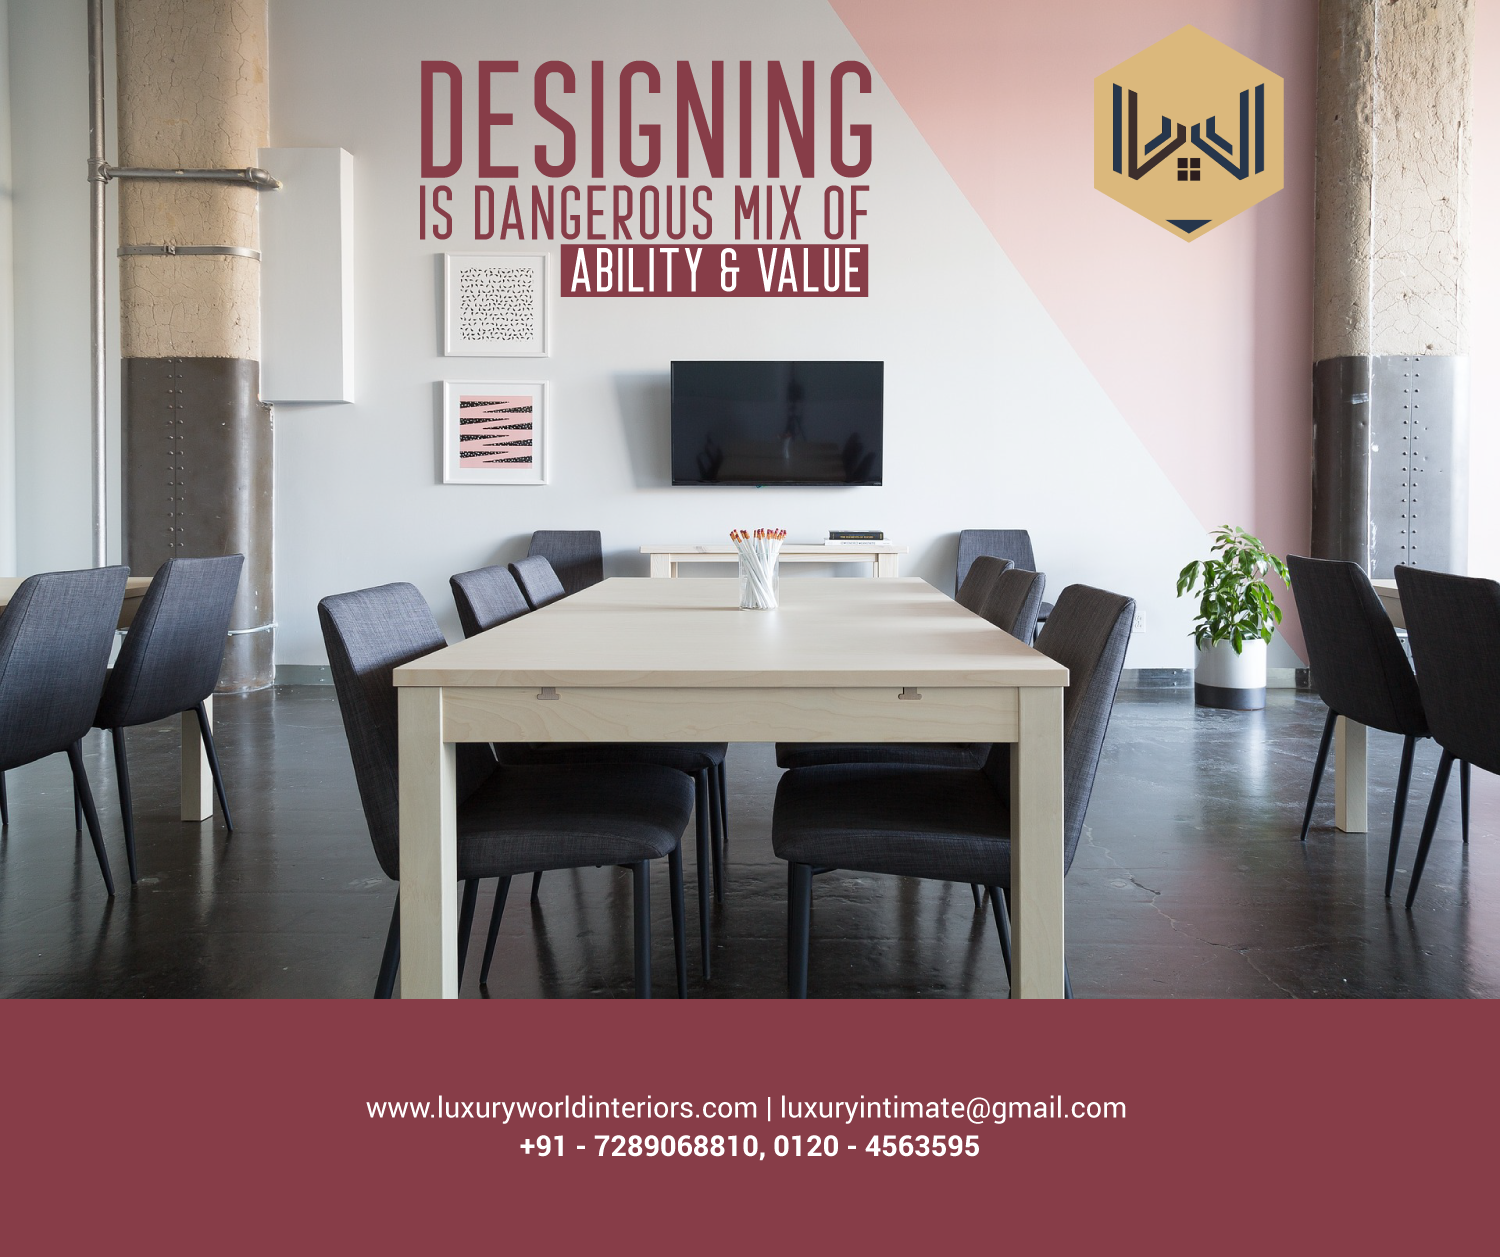 Designing is a dangerous mix of ability and value. Get